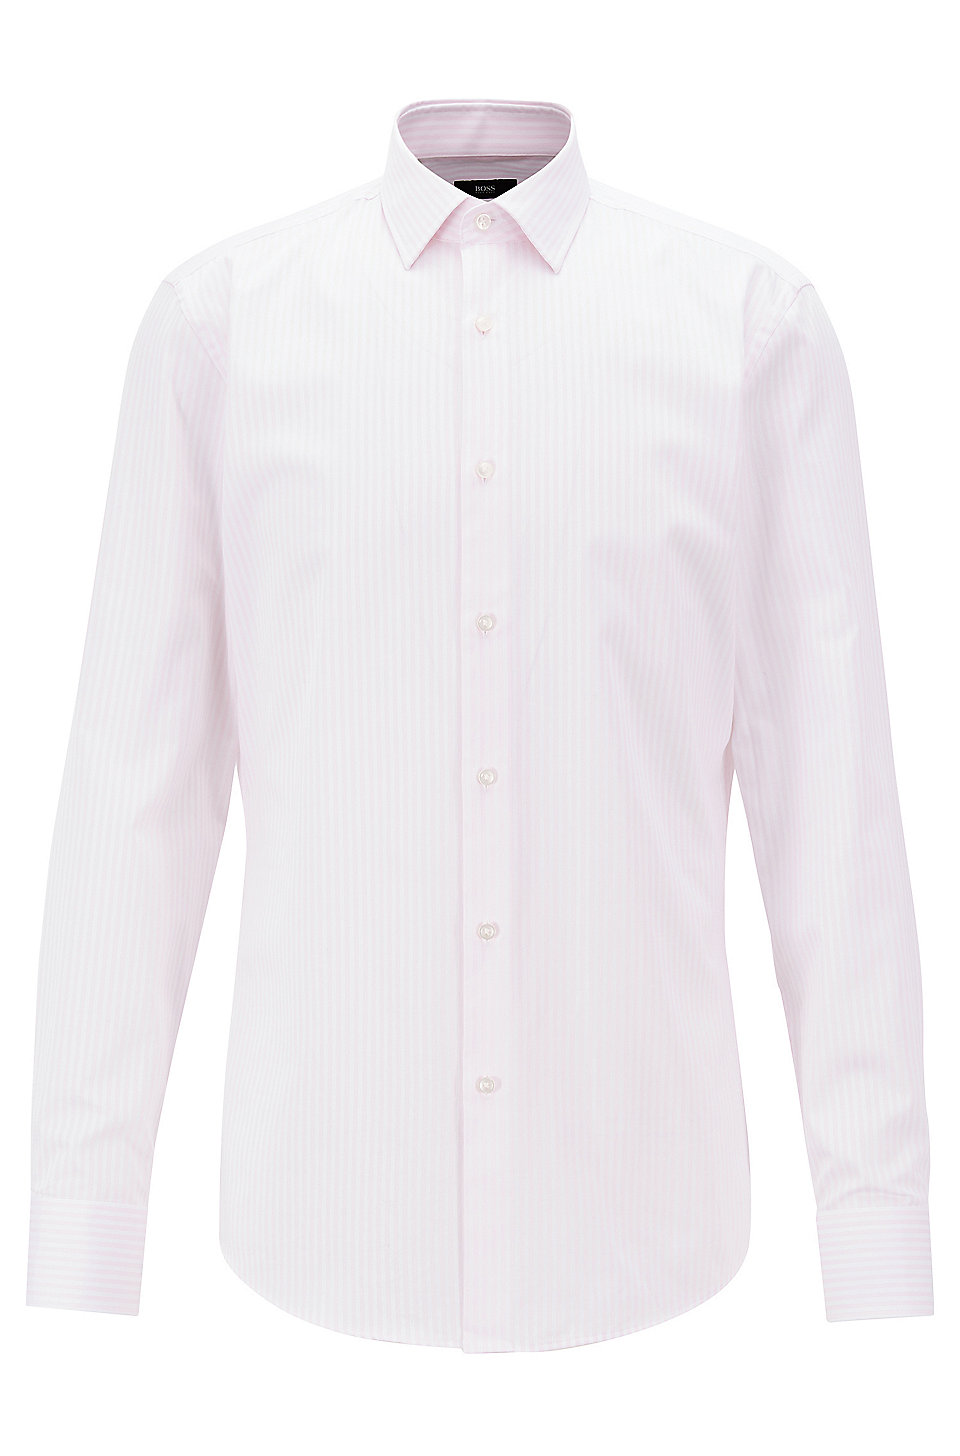 Boss Slim Fit Shirt With Vertical Stripes On Cotton Twill